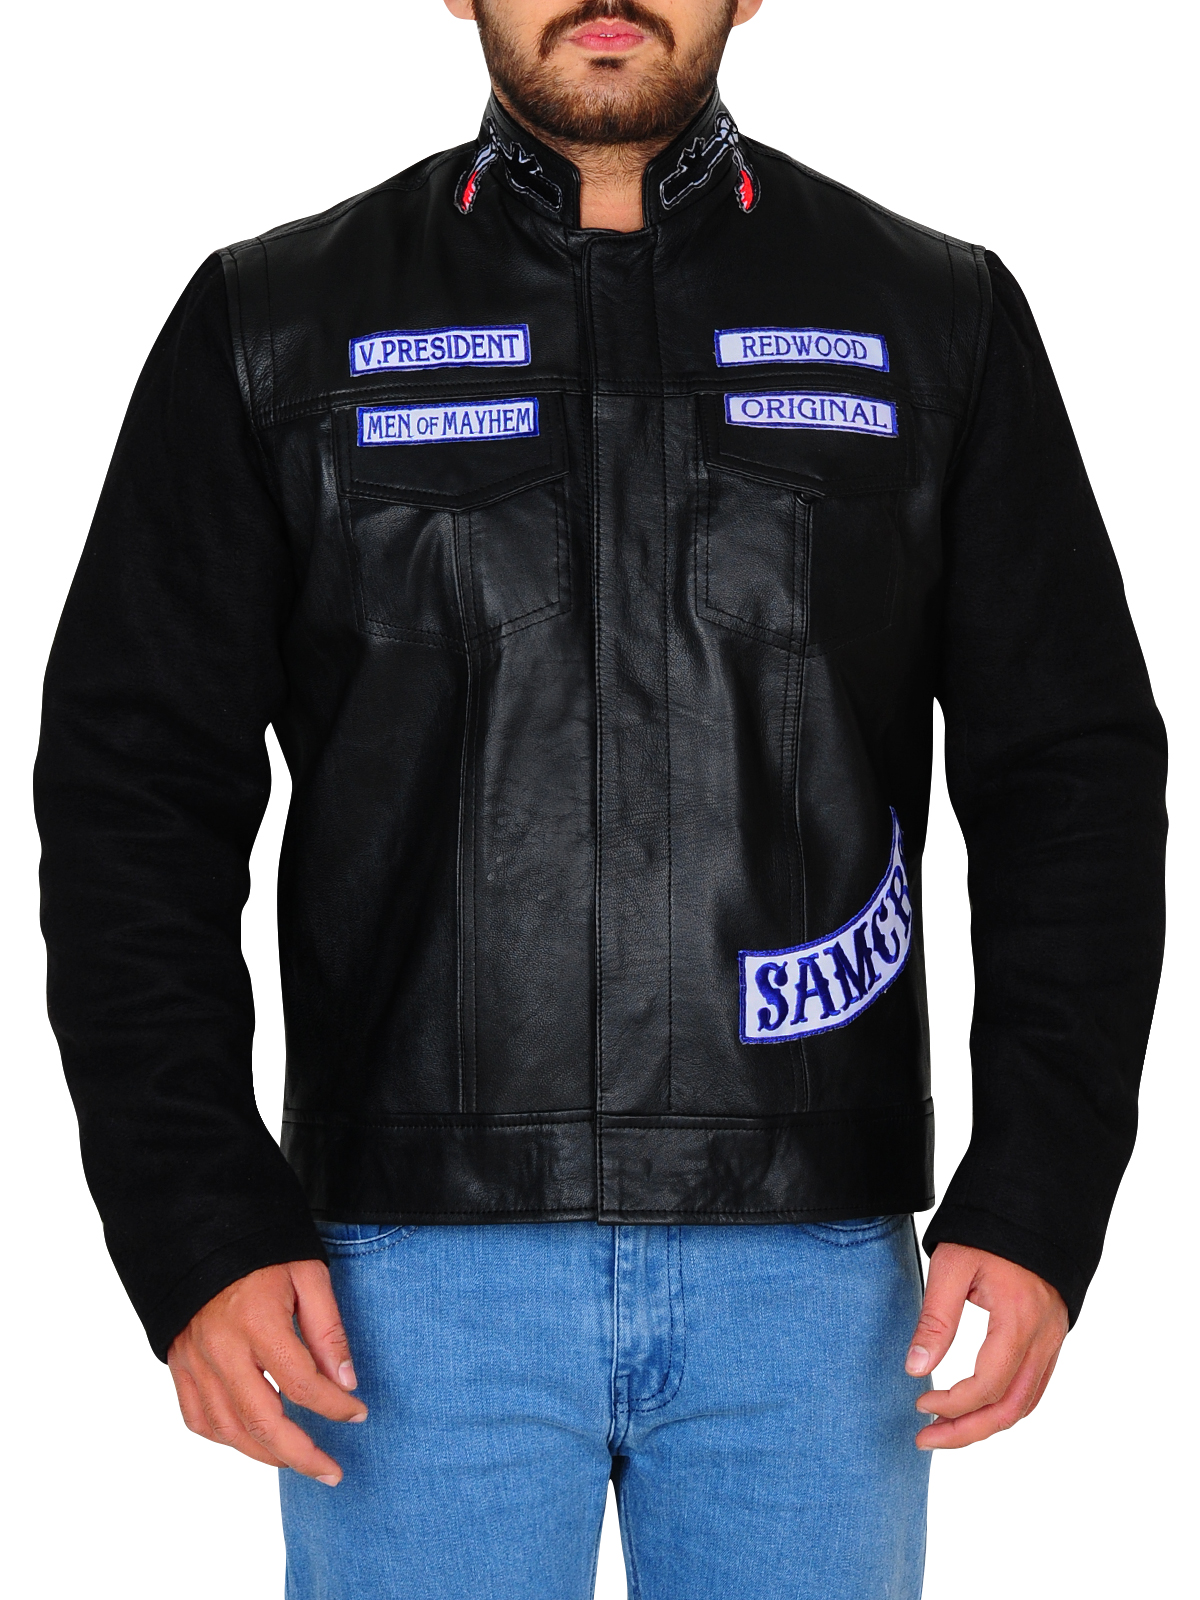 Sons of Anarchy Biker Leather Jacket